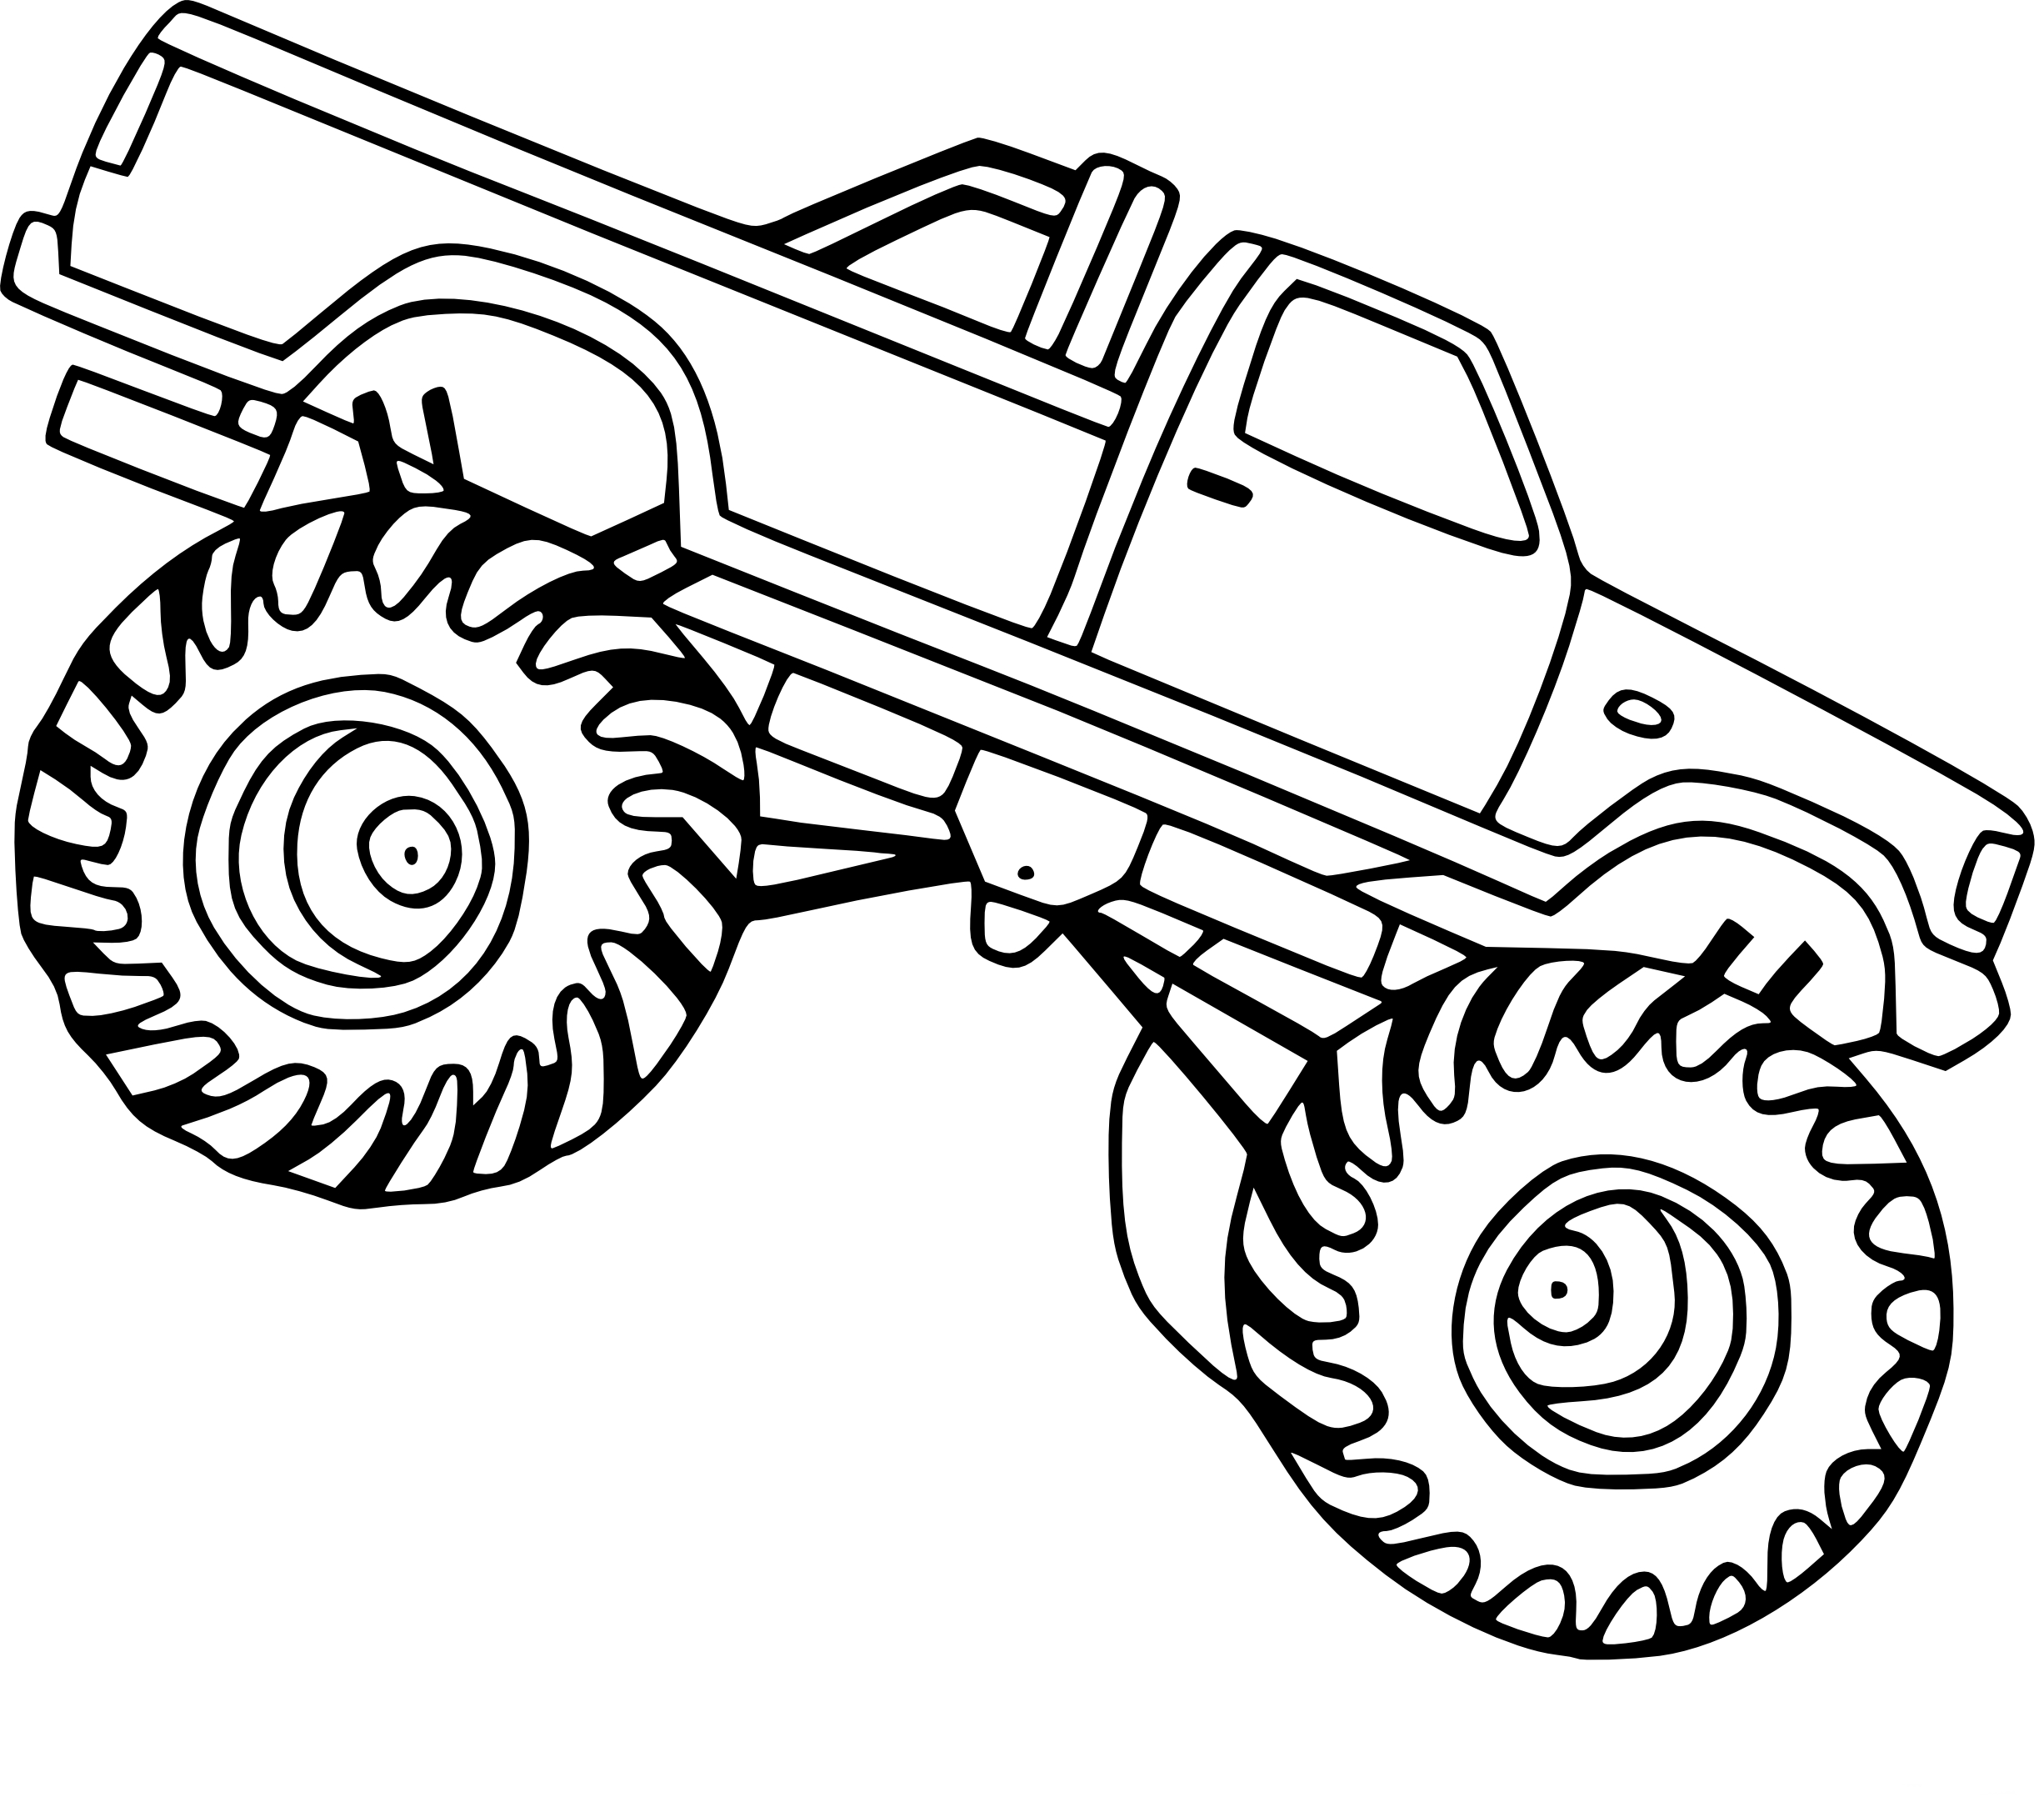 Coloriage monster truck imprimer - Coloriage de monster ...